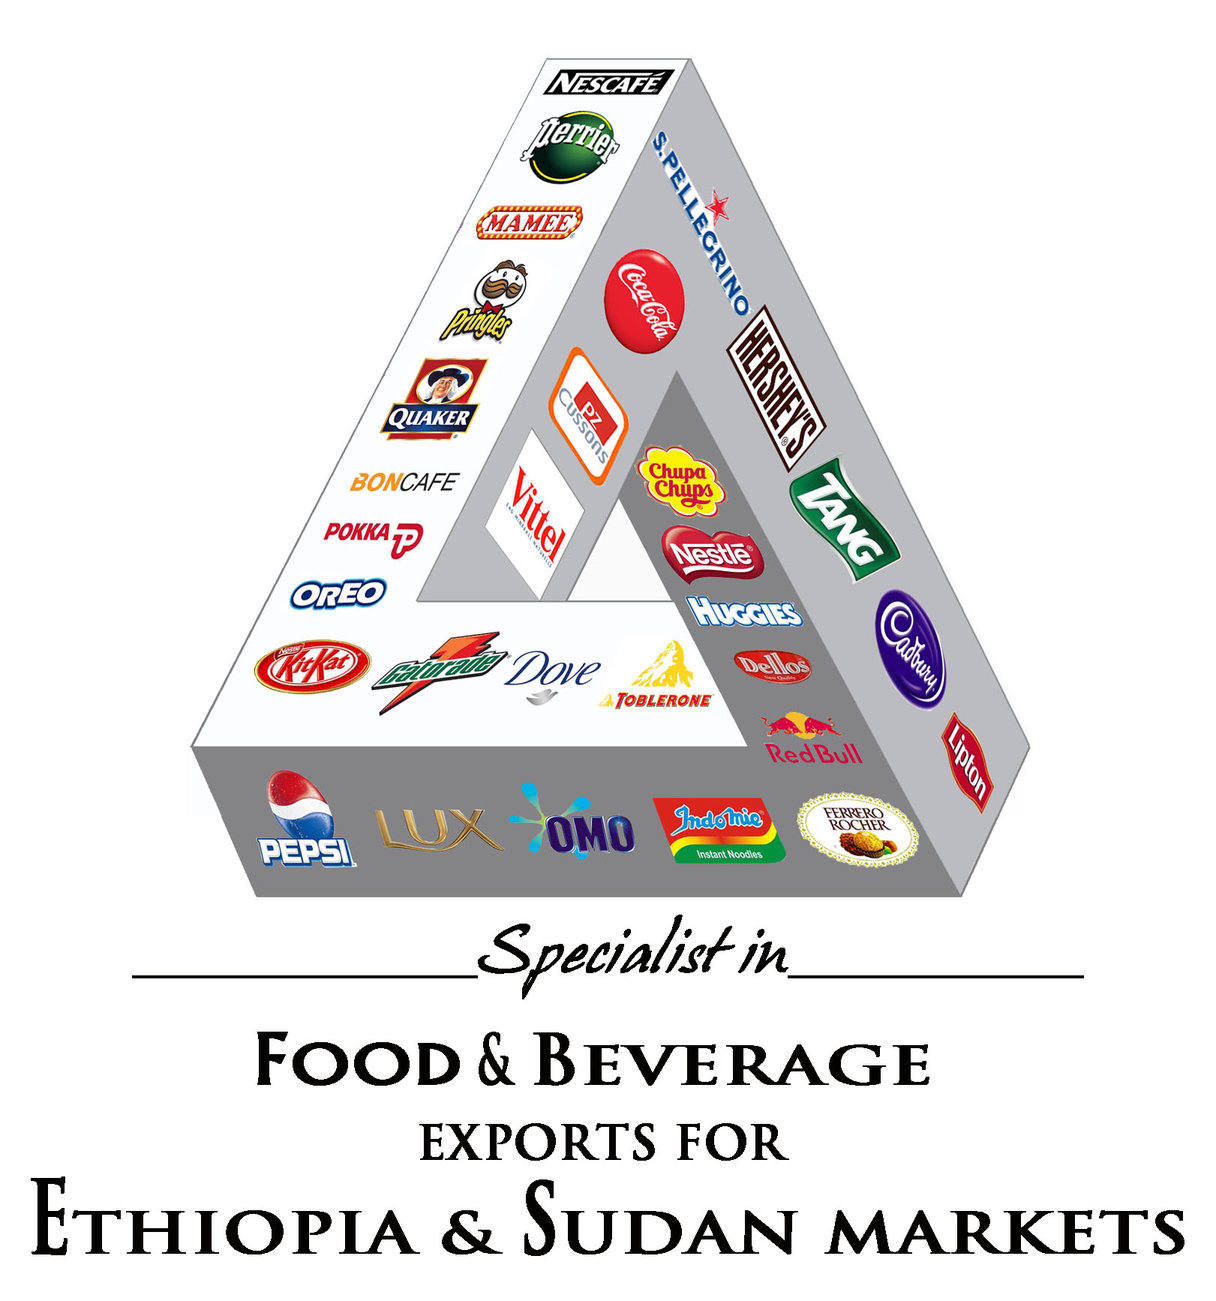 SPECIALISTS IN FOOD & BEVERAGE EXPORTS FOR ETHIOPIA & SUDAN MARKETS